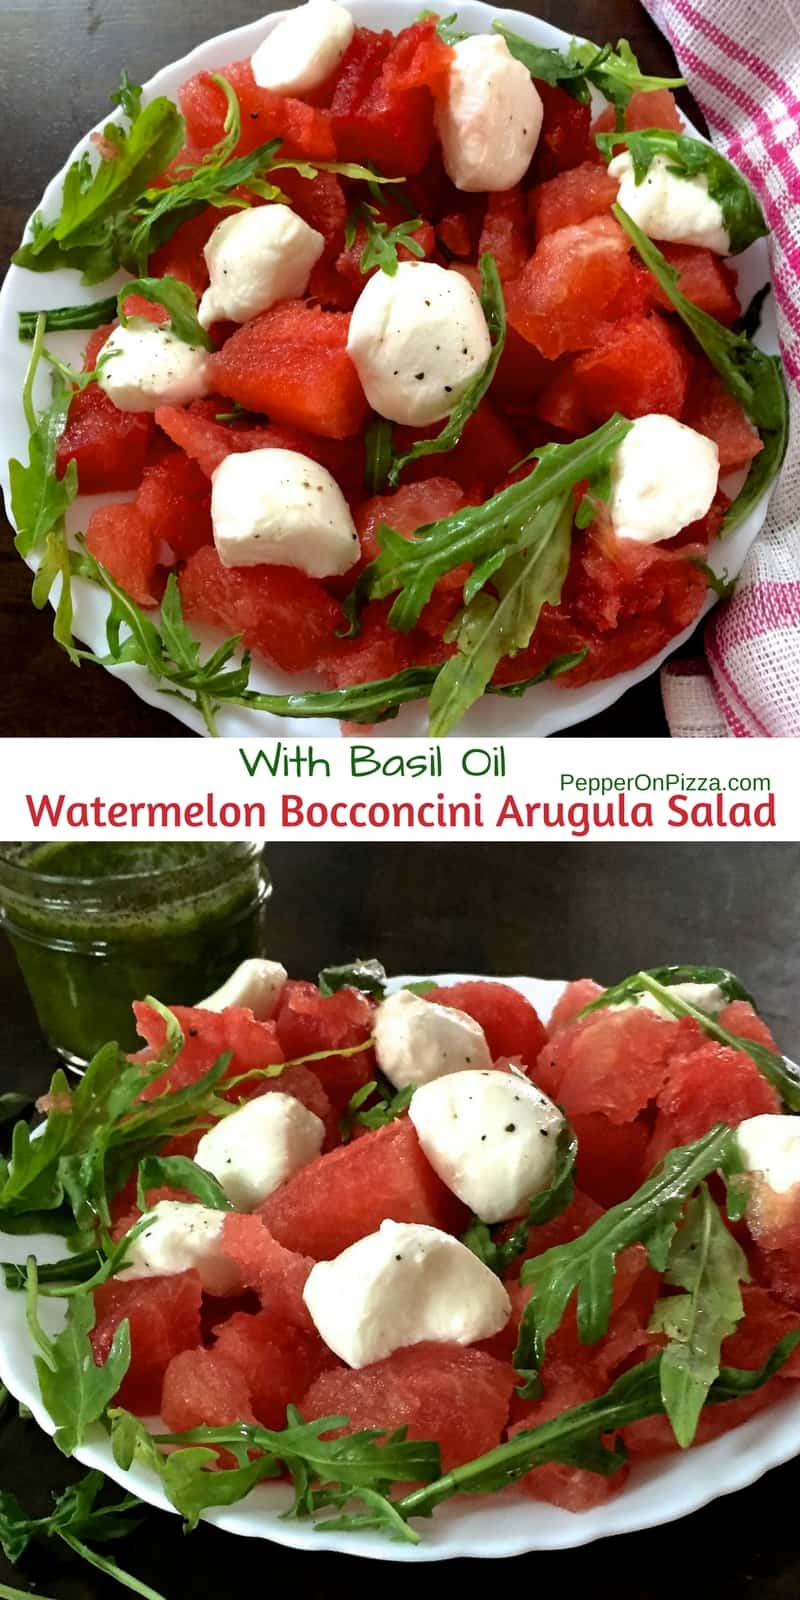 Watermelon salad with bocconcini arugula basil oil. https://www.PepperOnPizza.com